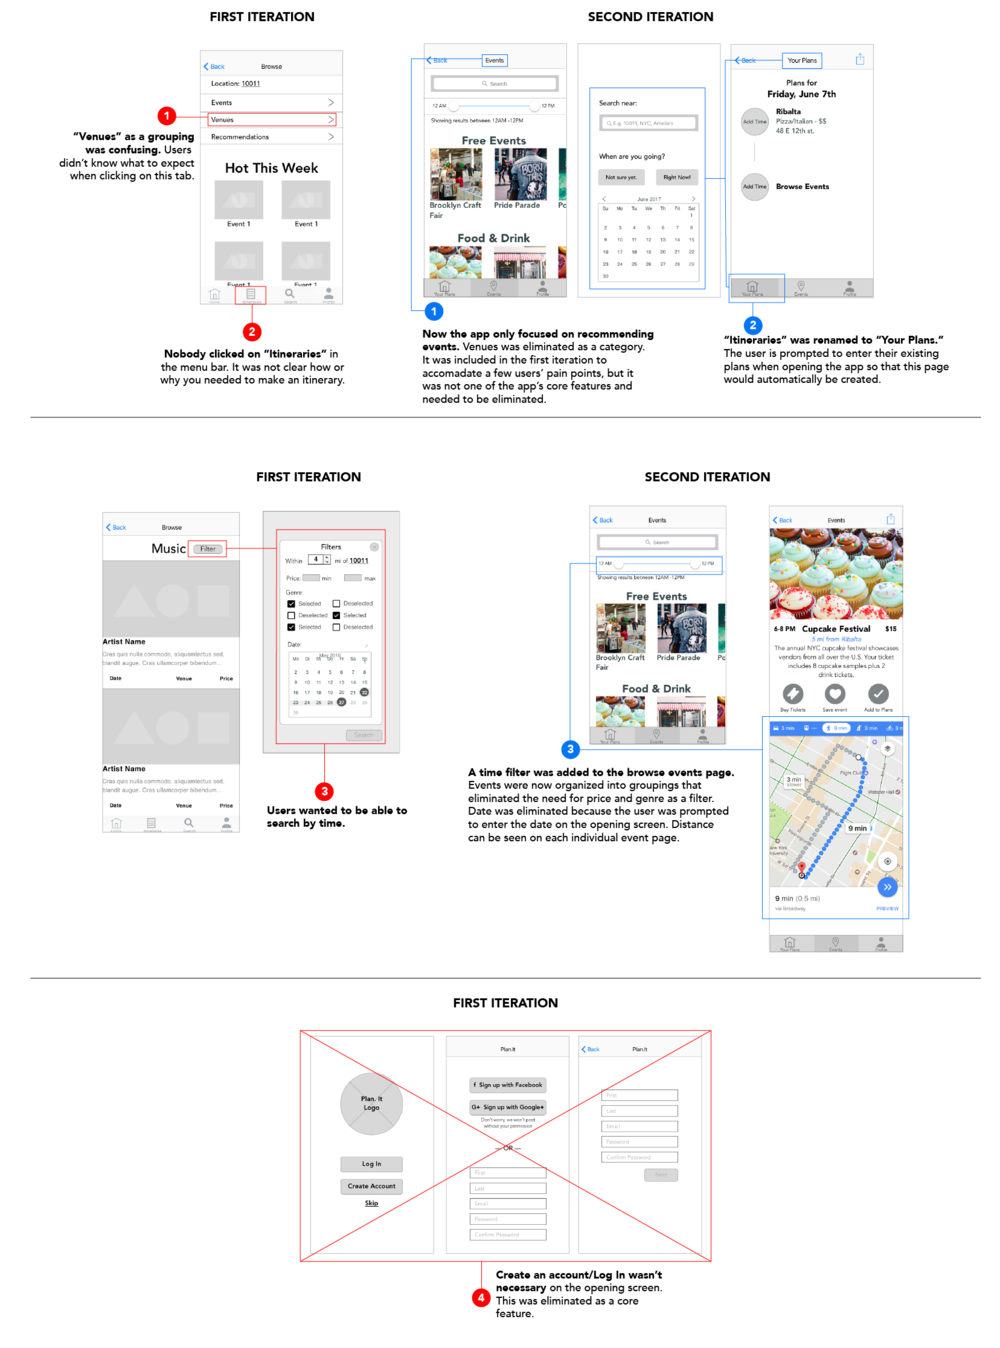 Image: A side by side comparison of the first and second iteration of wireframes to show improvements.